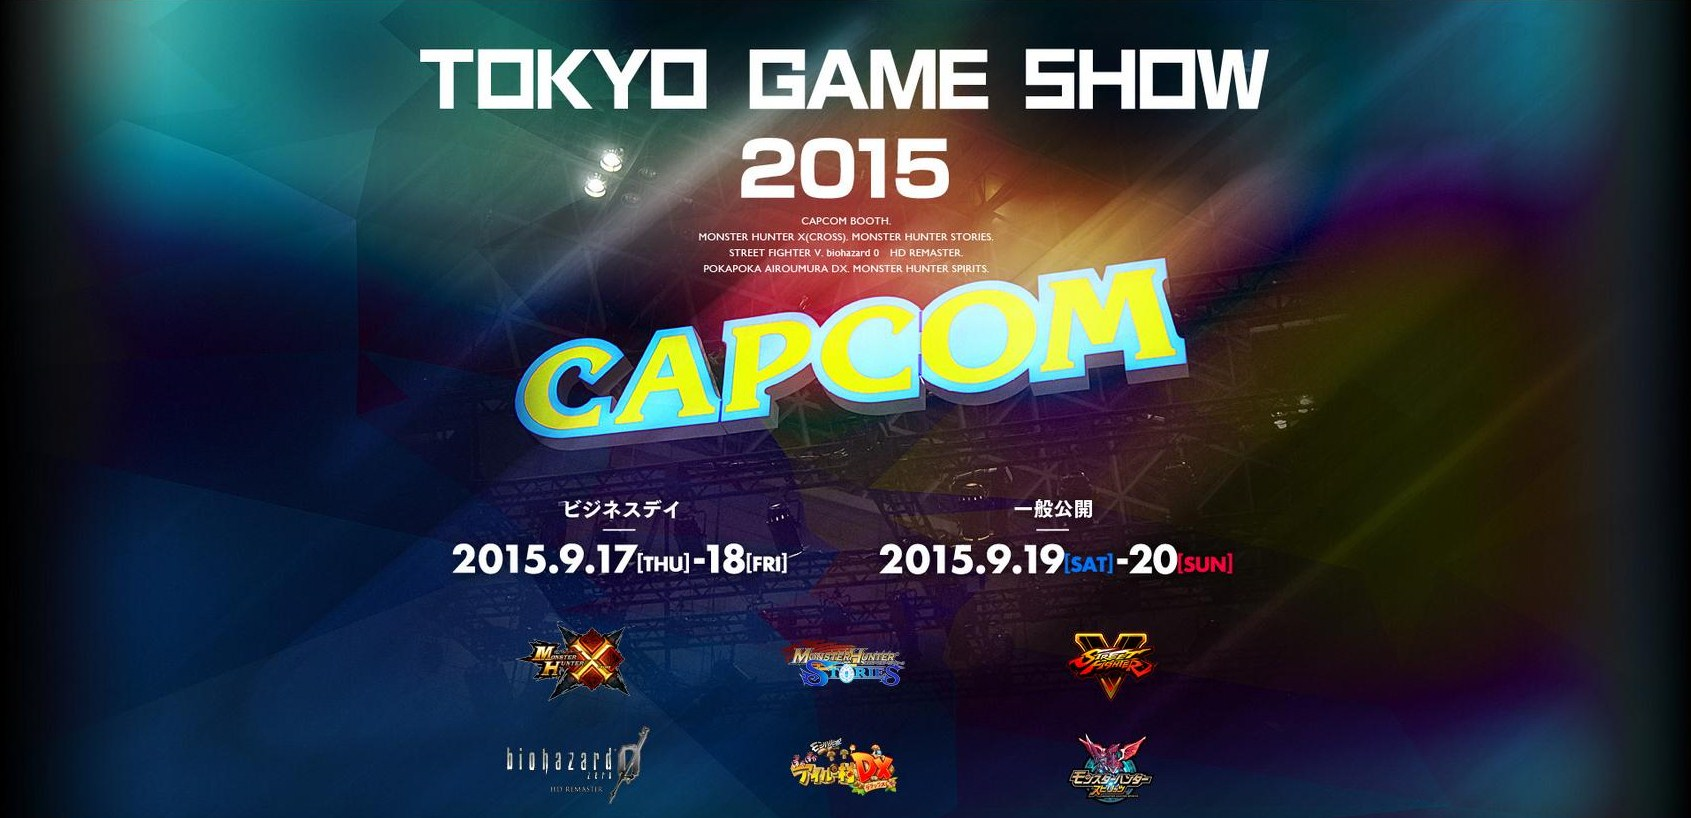 Will Capcom bring Resident Evil 7 and Resident Evil 2 Remake announcements to Tokyo Game Show?